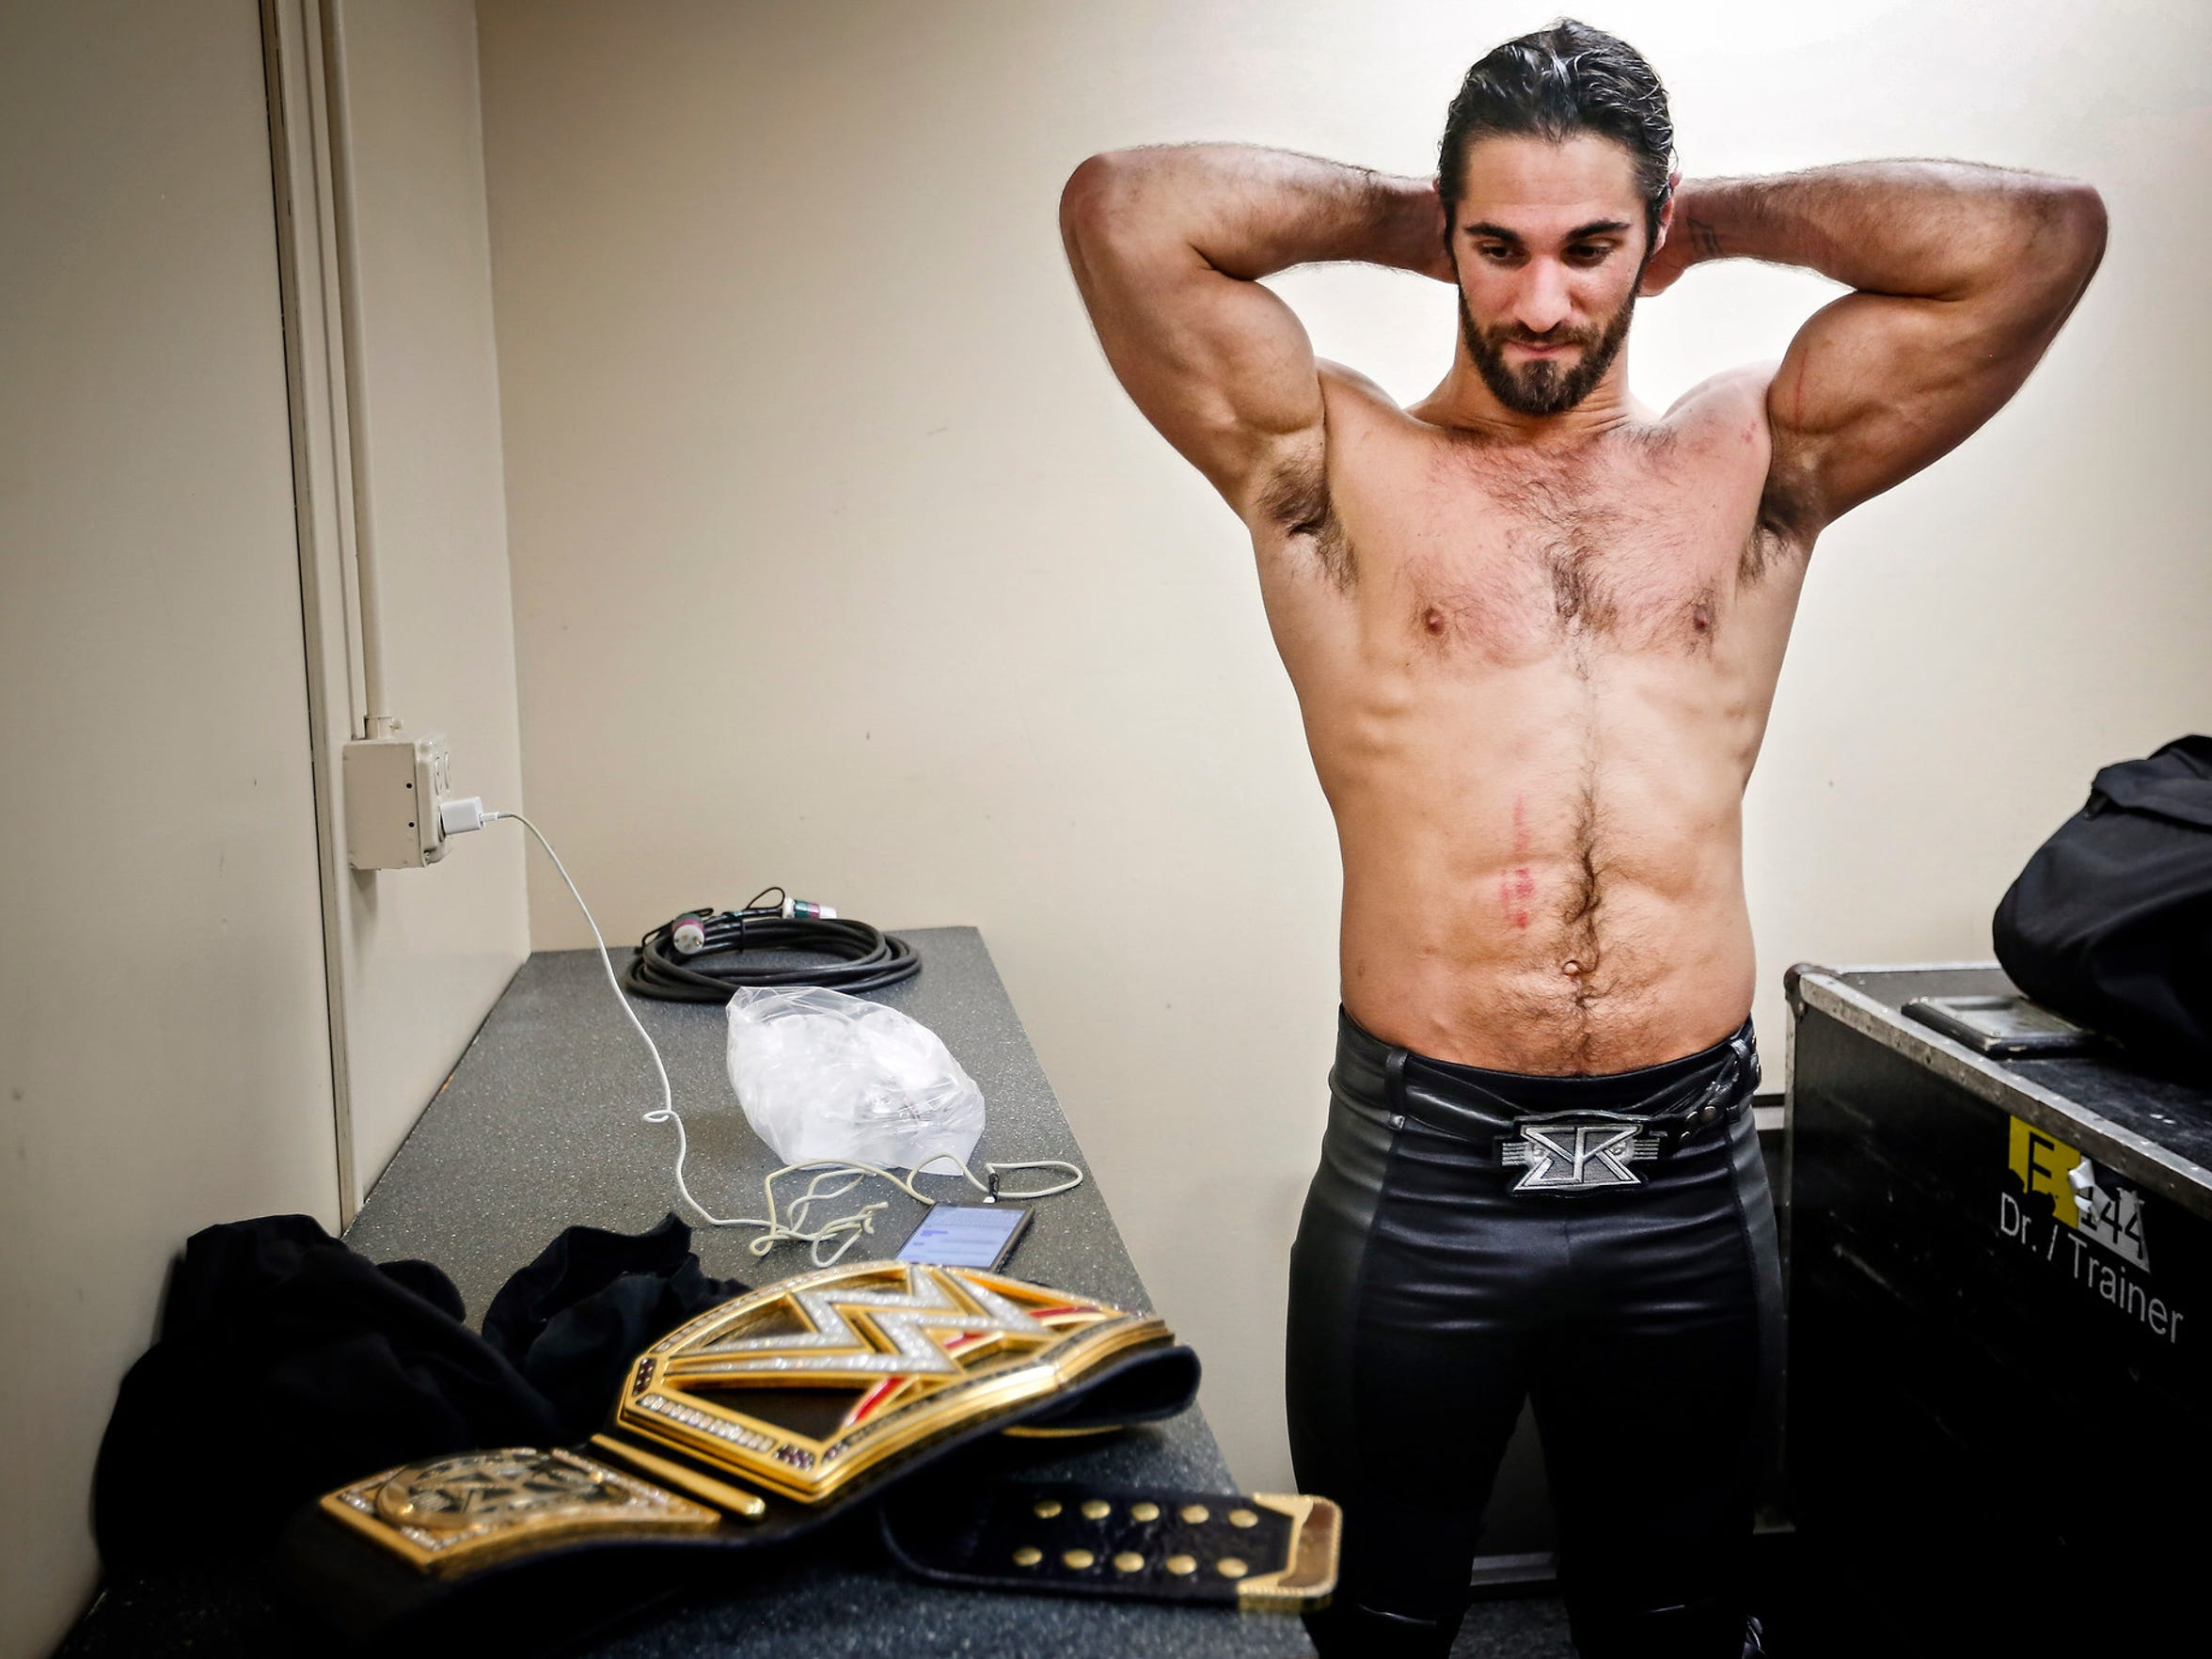 10:43PM: WWE Champion Seth Rollins cools down backstage